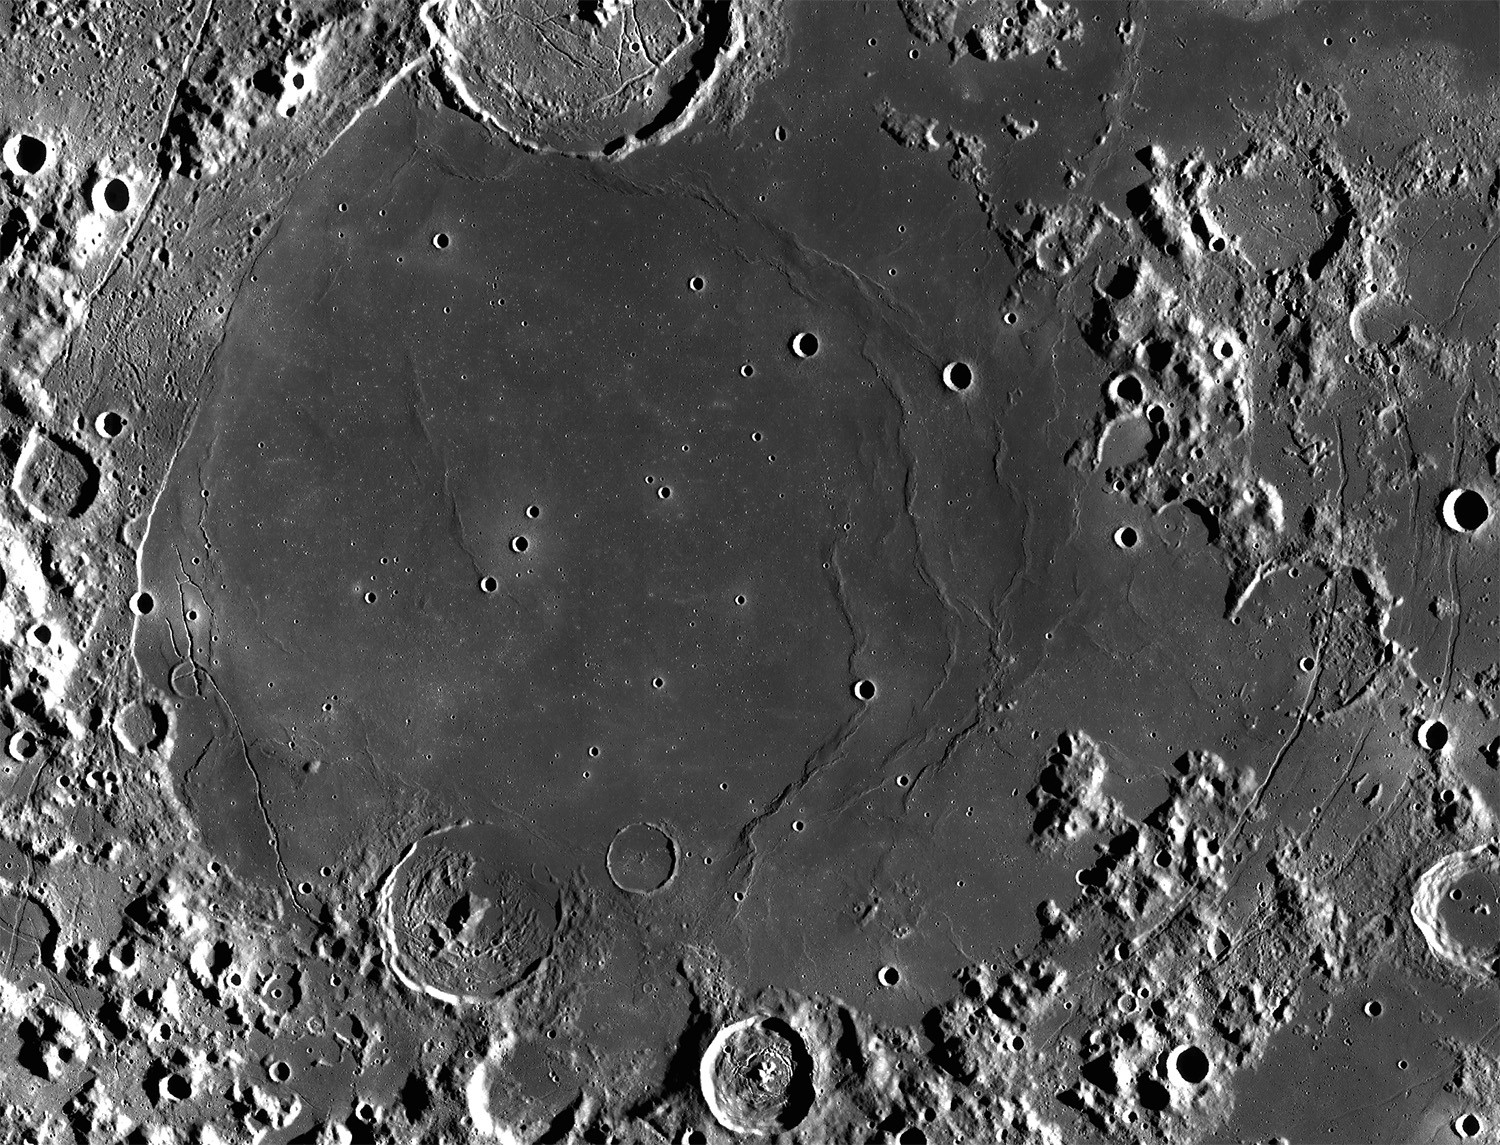 A view of Mare Humorum captured by the Lunar Reconnaissance Orbiter. On the eastern edge can be seen the cracks known as Rimae Hippalus. Credit: NASA (image by Lunar Reconnaissance Orbiter)